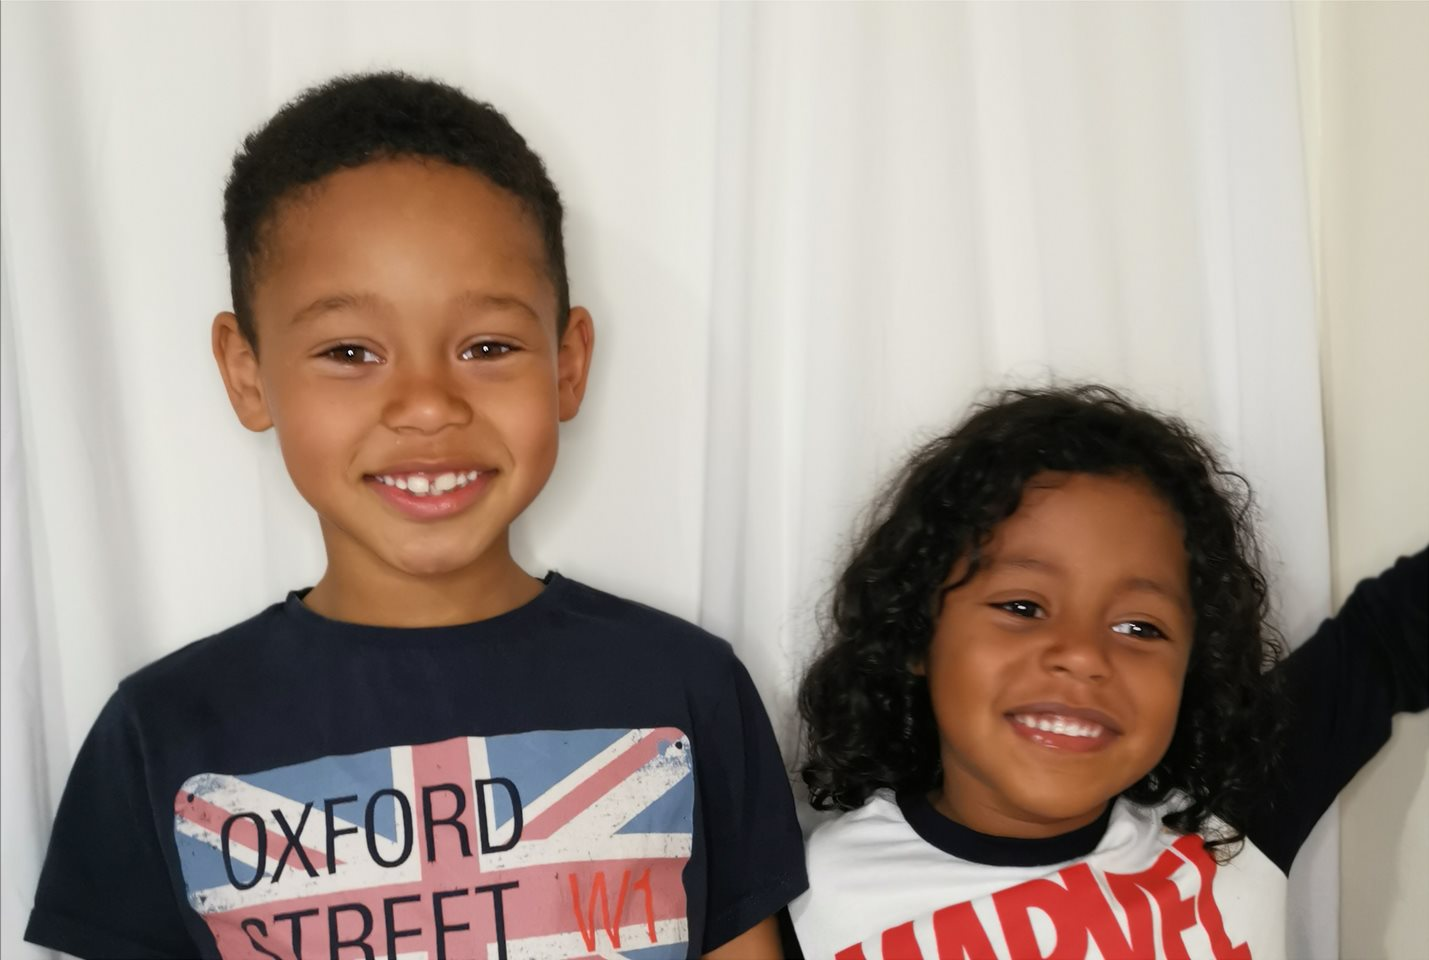 My two sons 6 and 7 years old